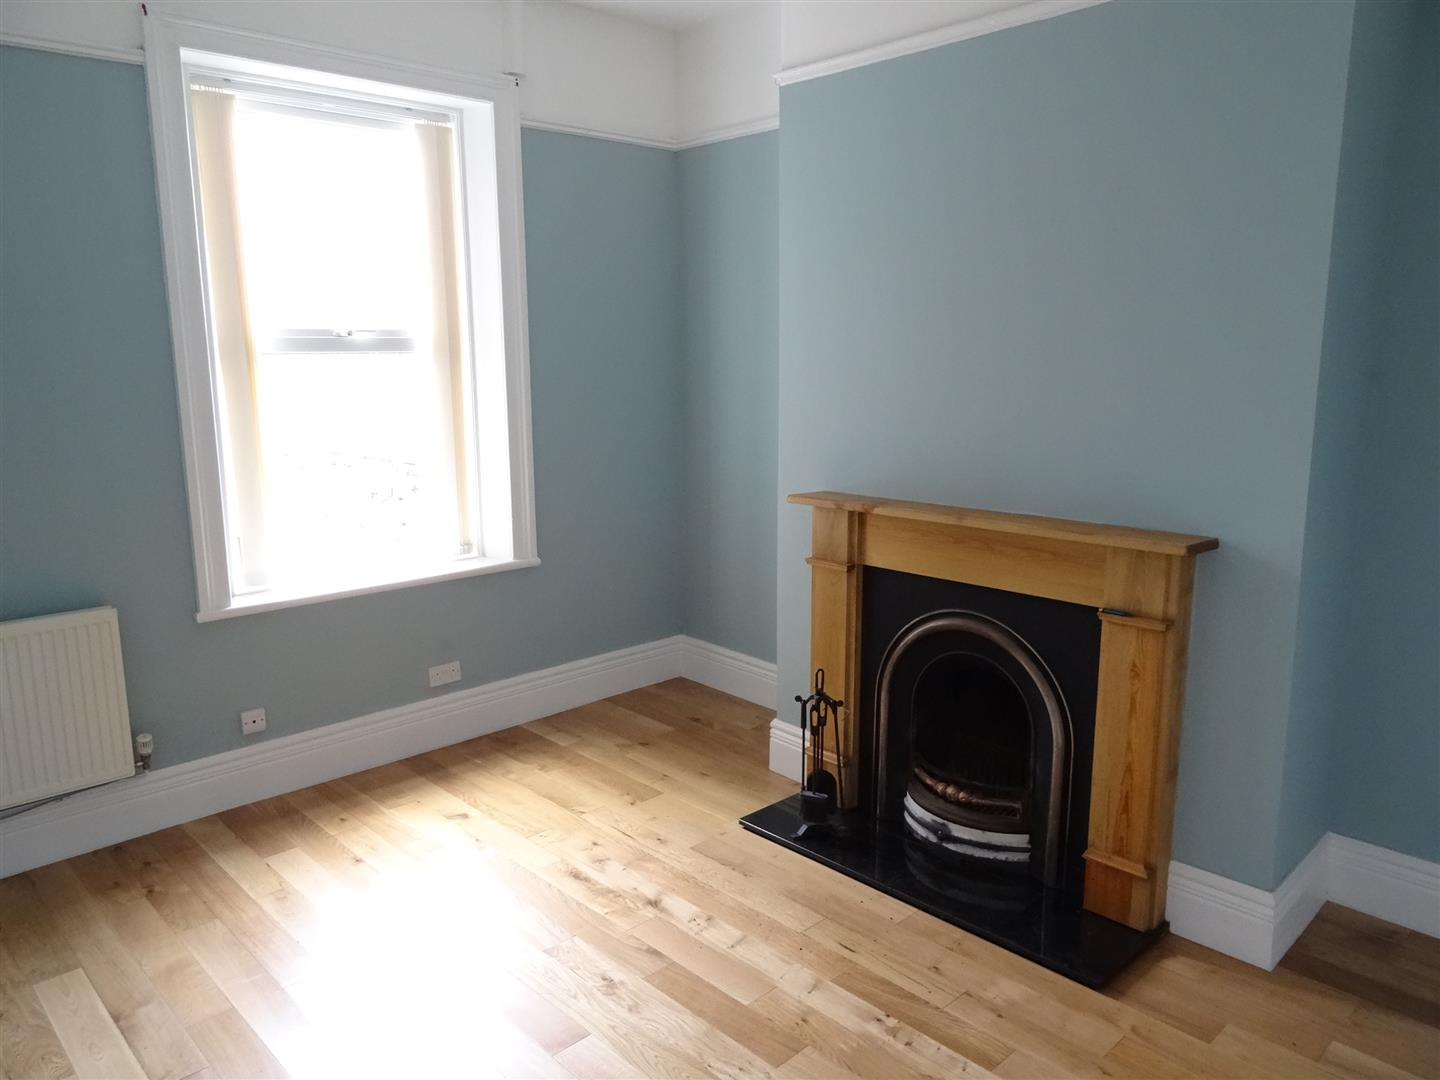 3 Bedrooms House - Terraced For Sale 46 Dalston Road Carlisle